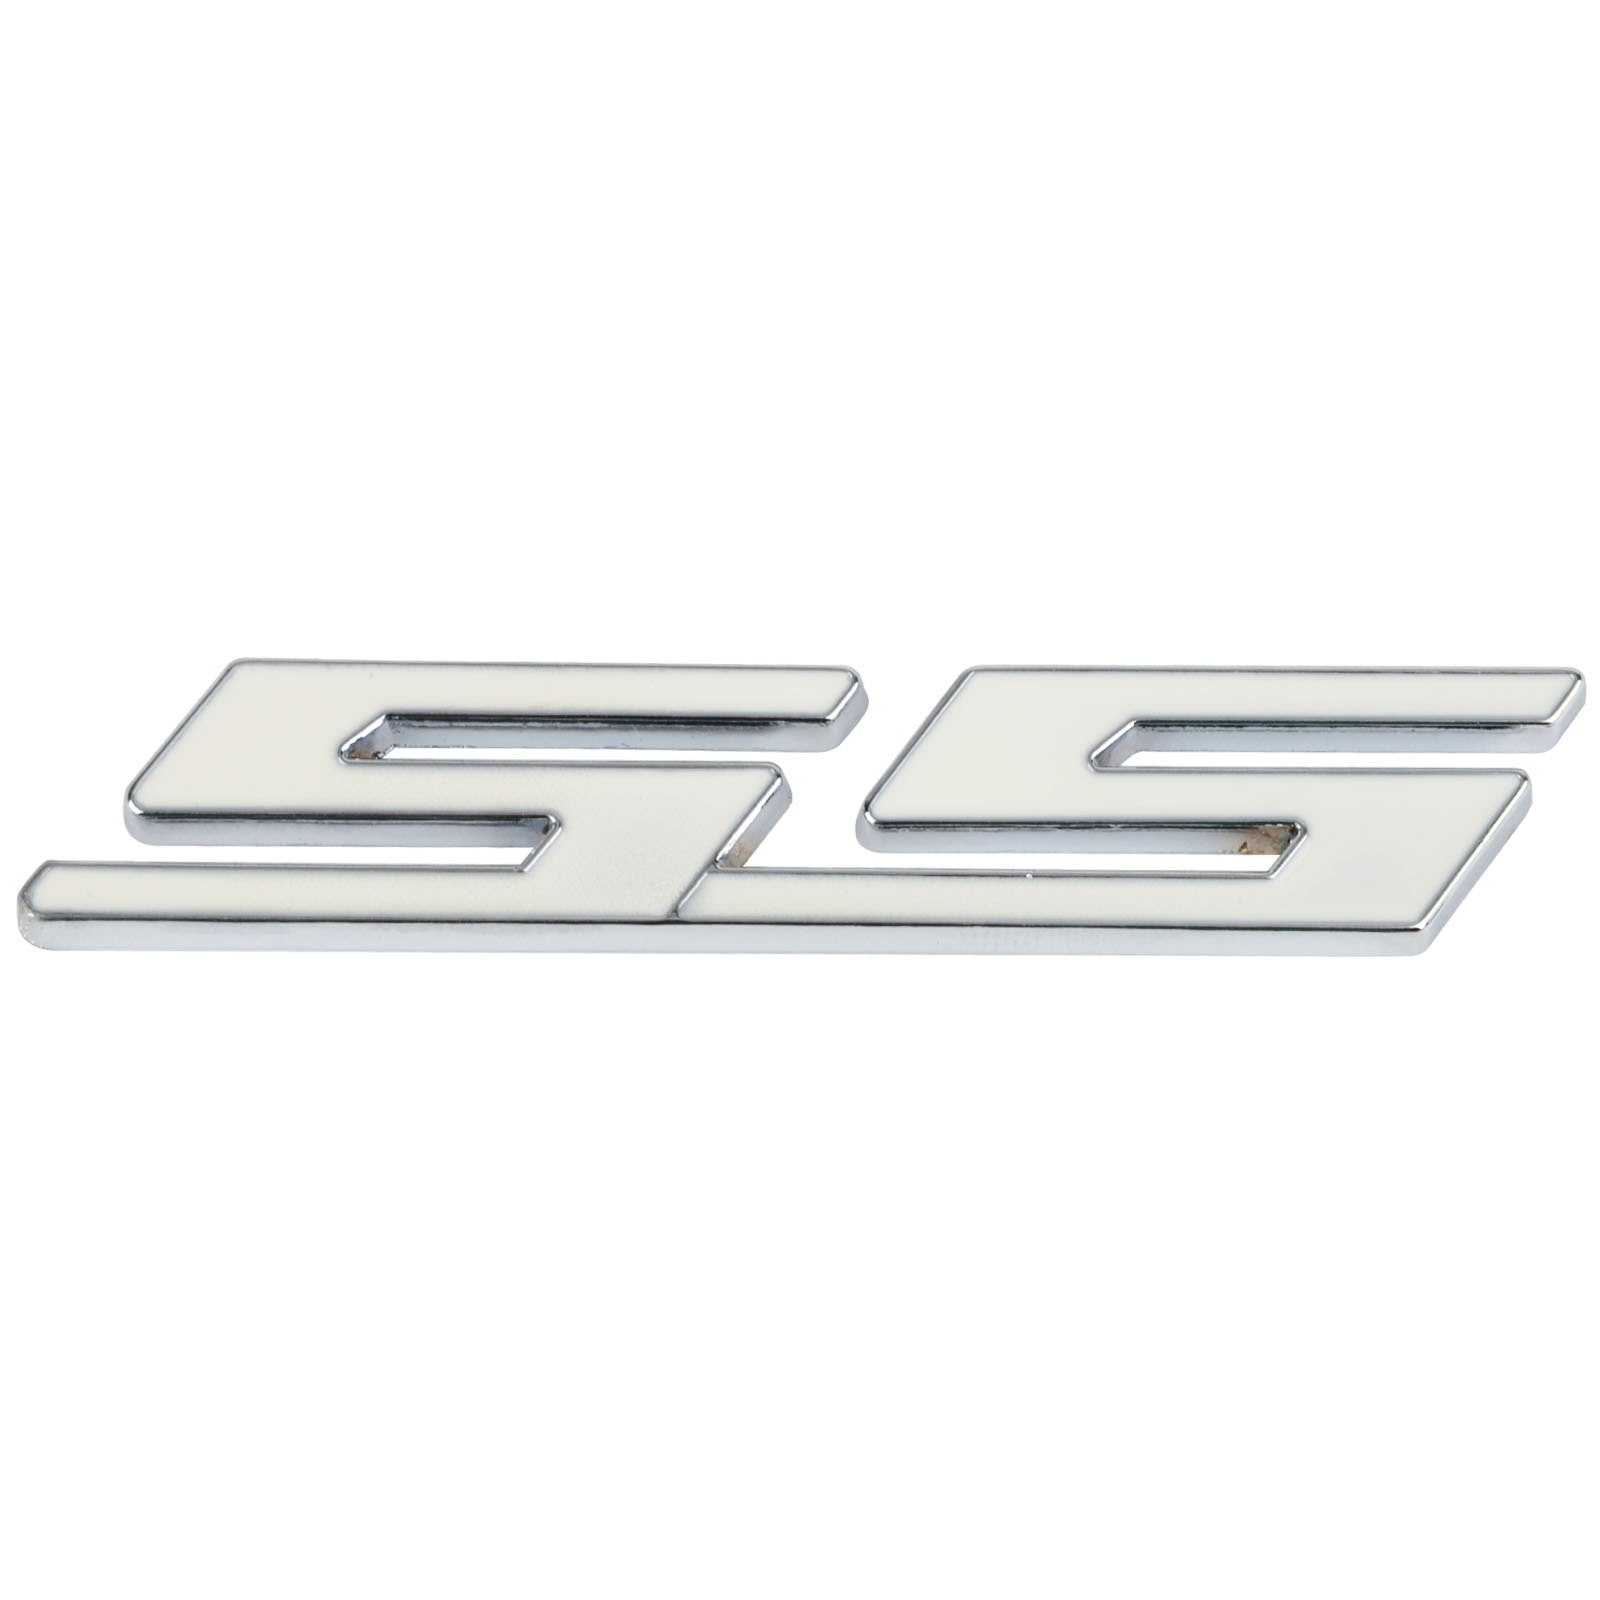 Mayitr high quality 3d metal white ss logo emblem sticker car body grille badge decal for